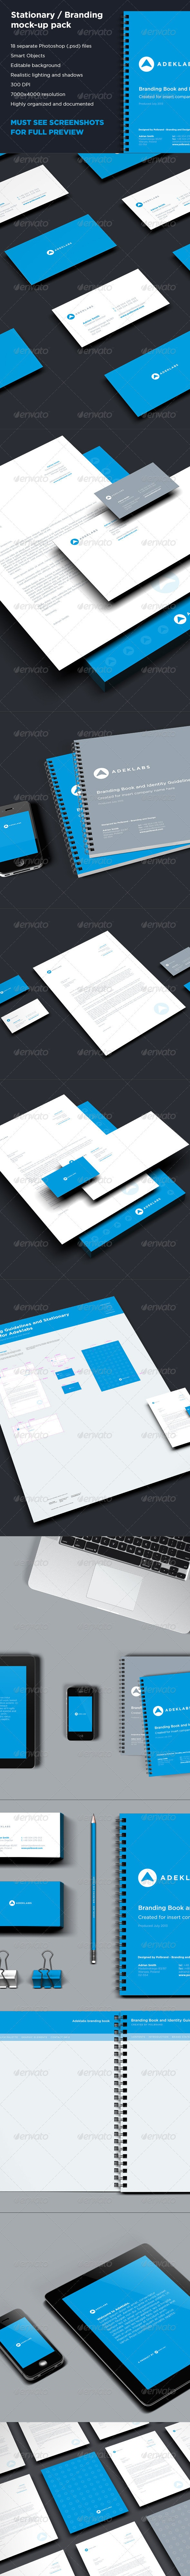 Branding and Stationary Mock-up Collection Pack - Stationery Print